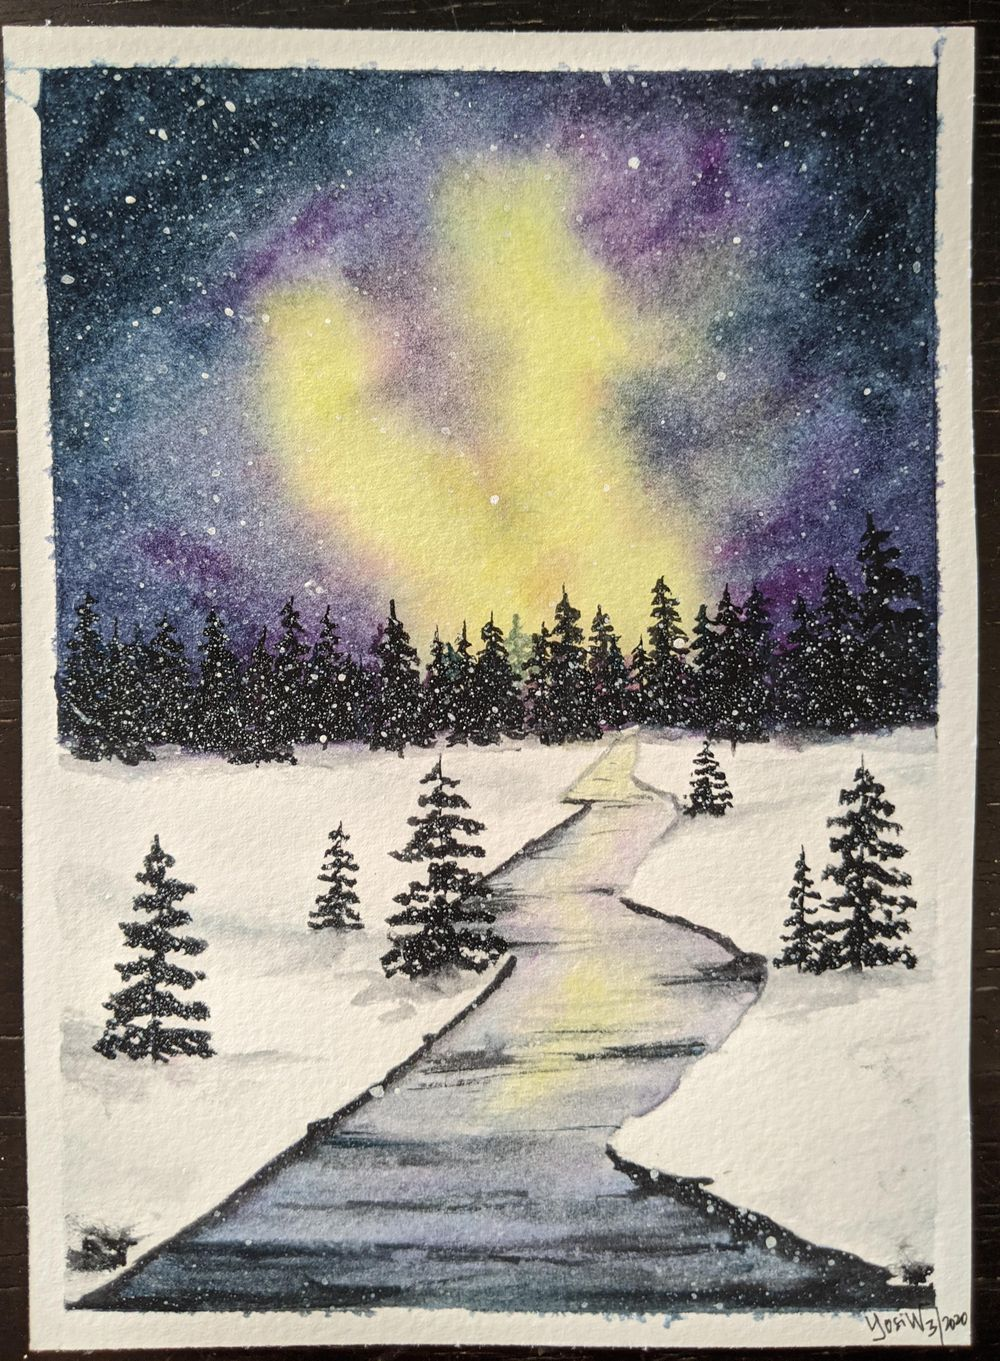 Winter Landscape - Snowy River - image 1 - student project